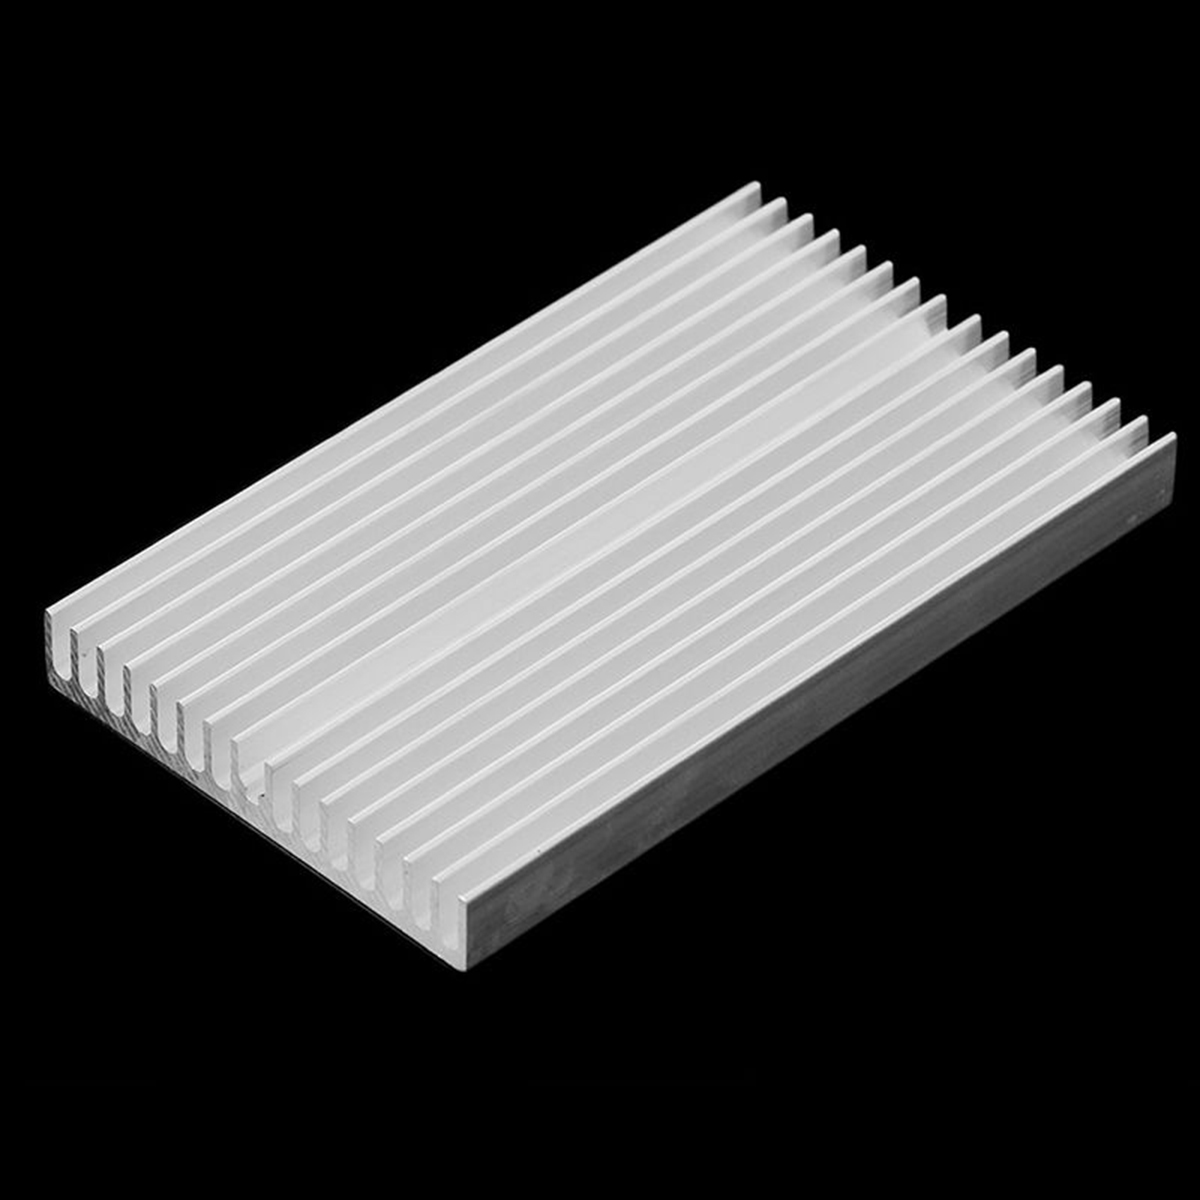 DWZ 100*60*10mm Aluminum Radiator Cooler Heatsink Chip for LED IC Power Transistors 50pcs 8 8x8 8x5mm aluminum heatsink radiator cooling cooler for electronic chip ic ram led with thermal conductive tape